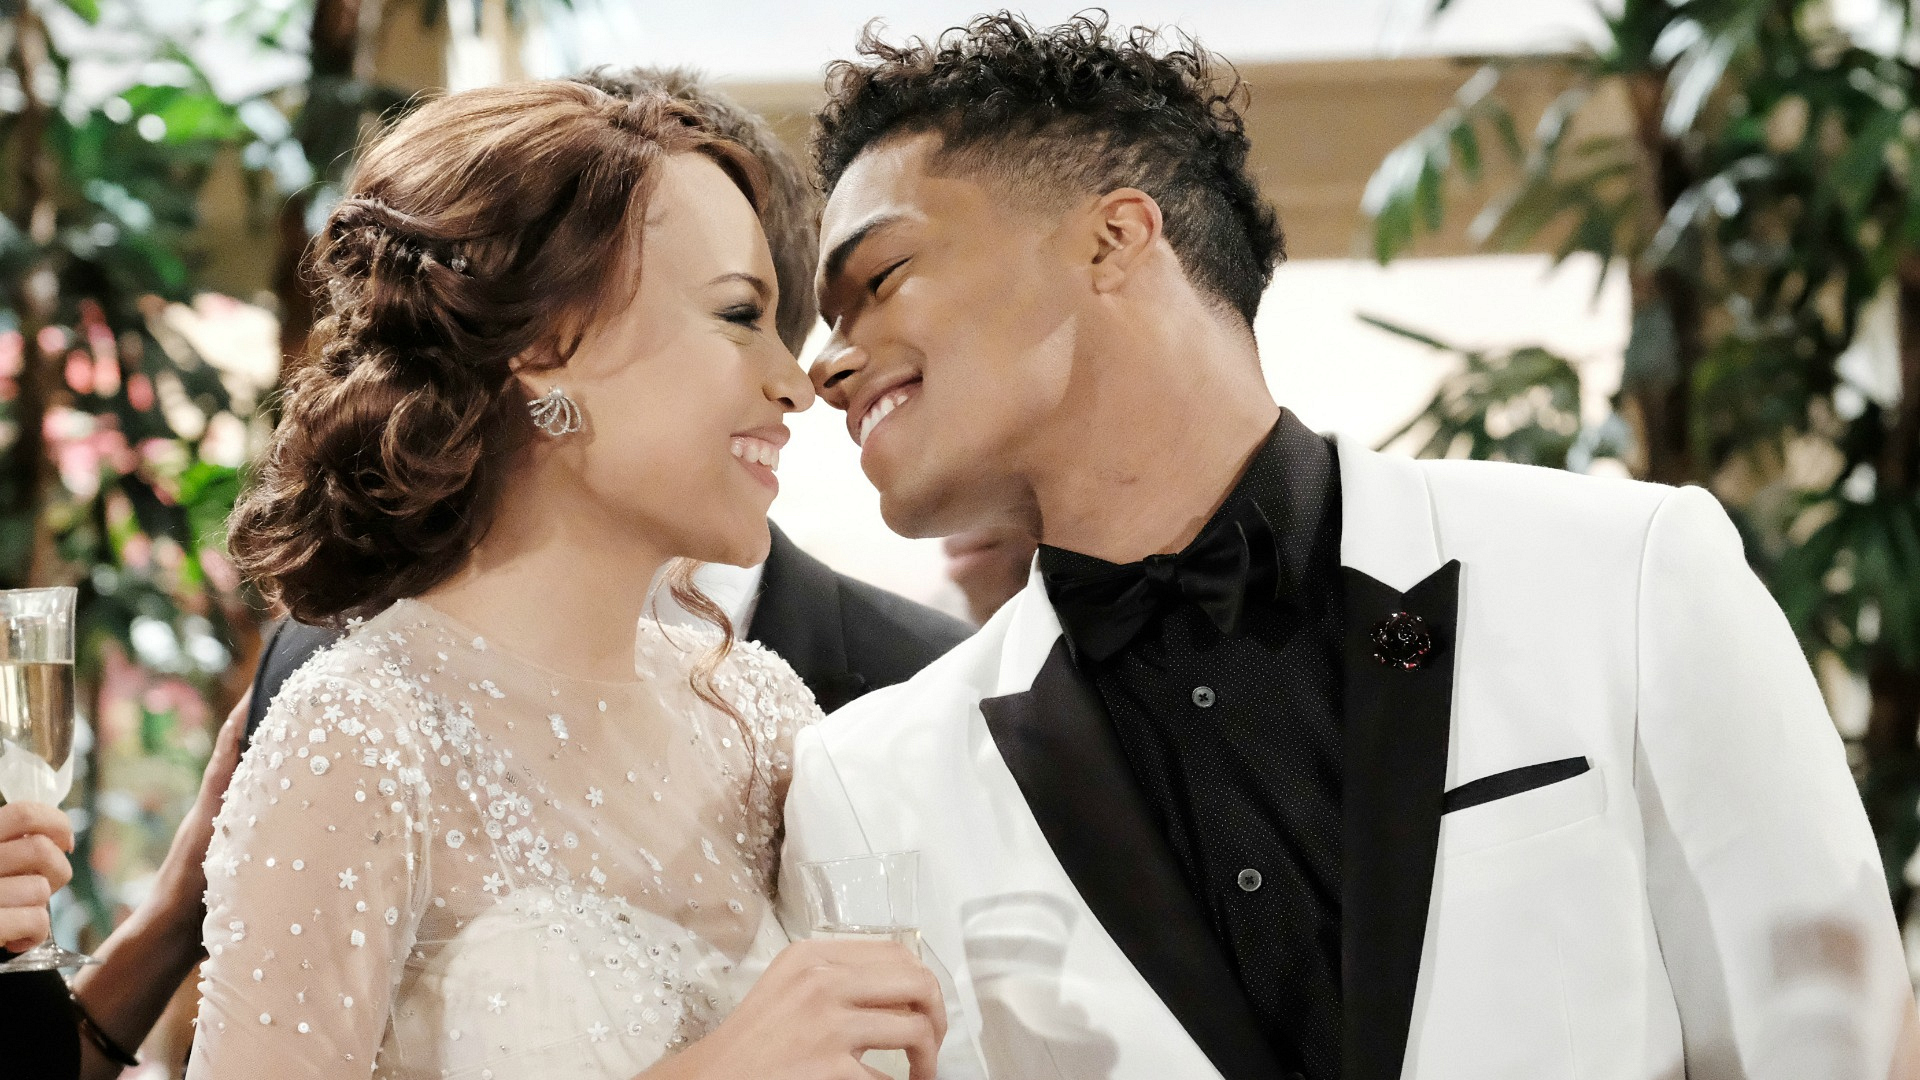 Nicole and Zende tie the knot.